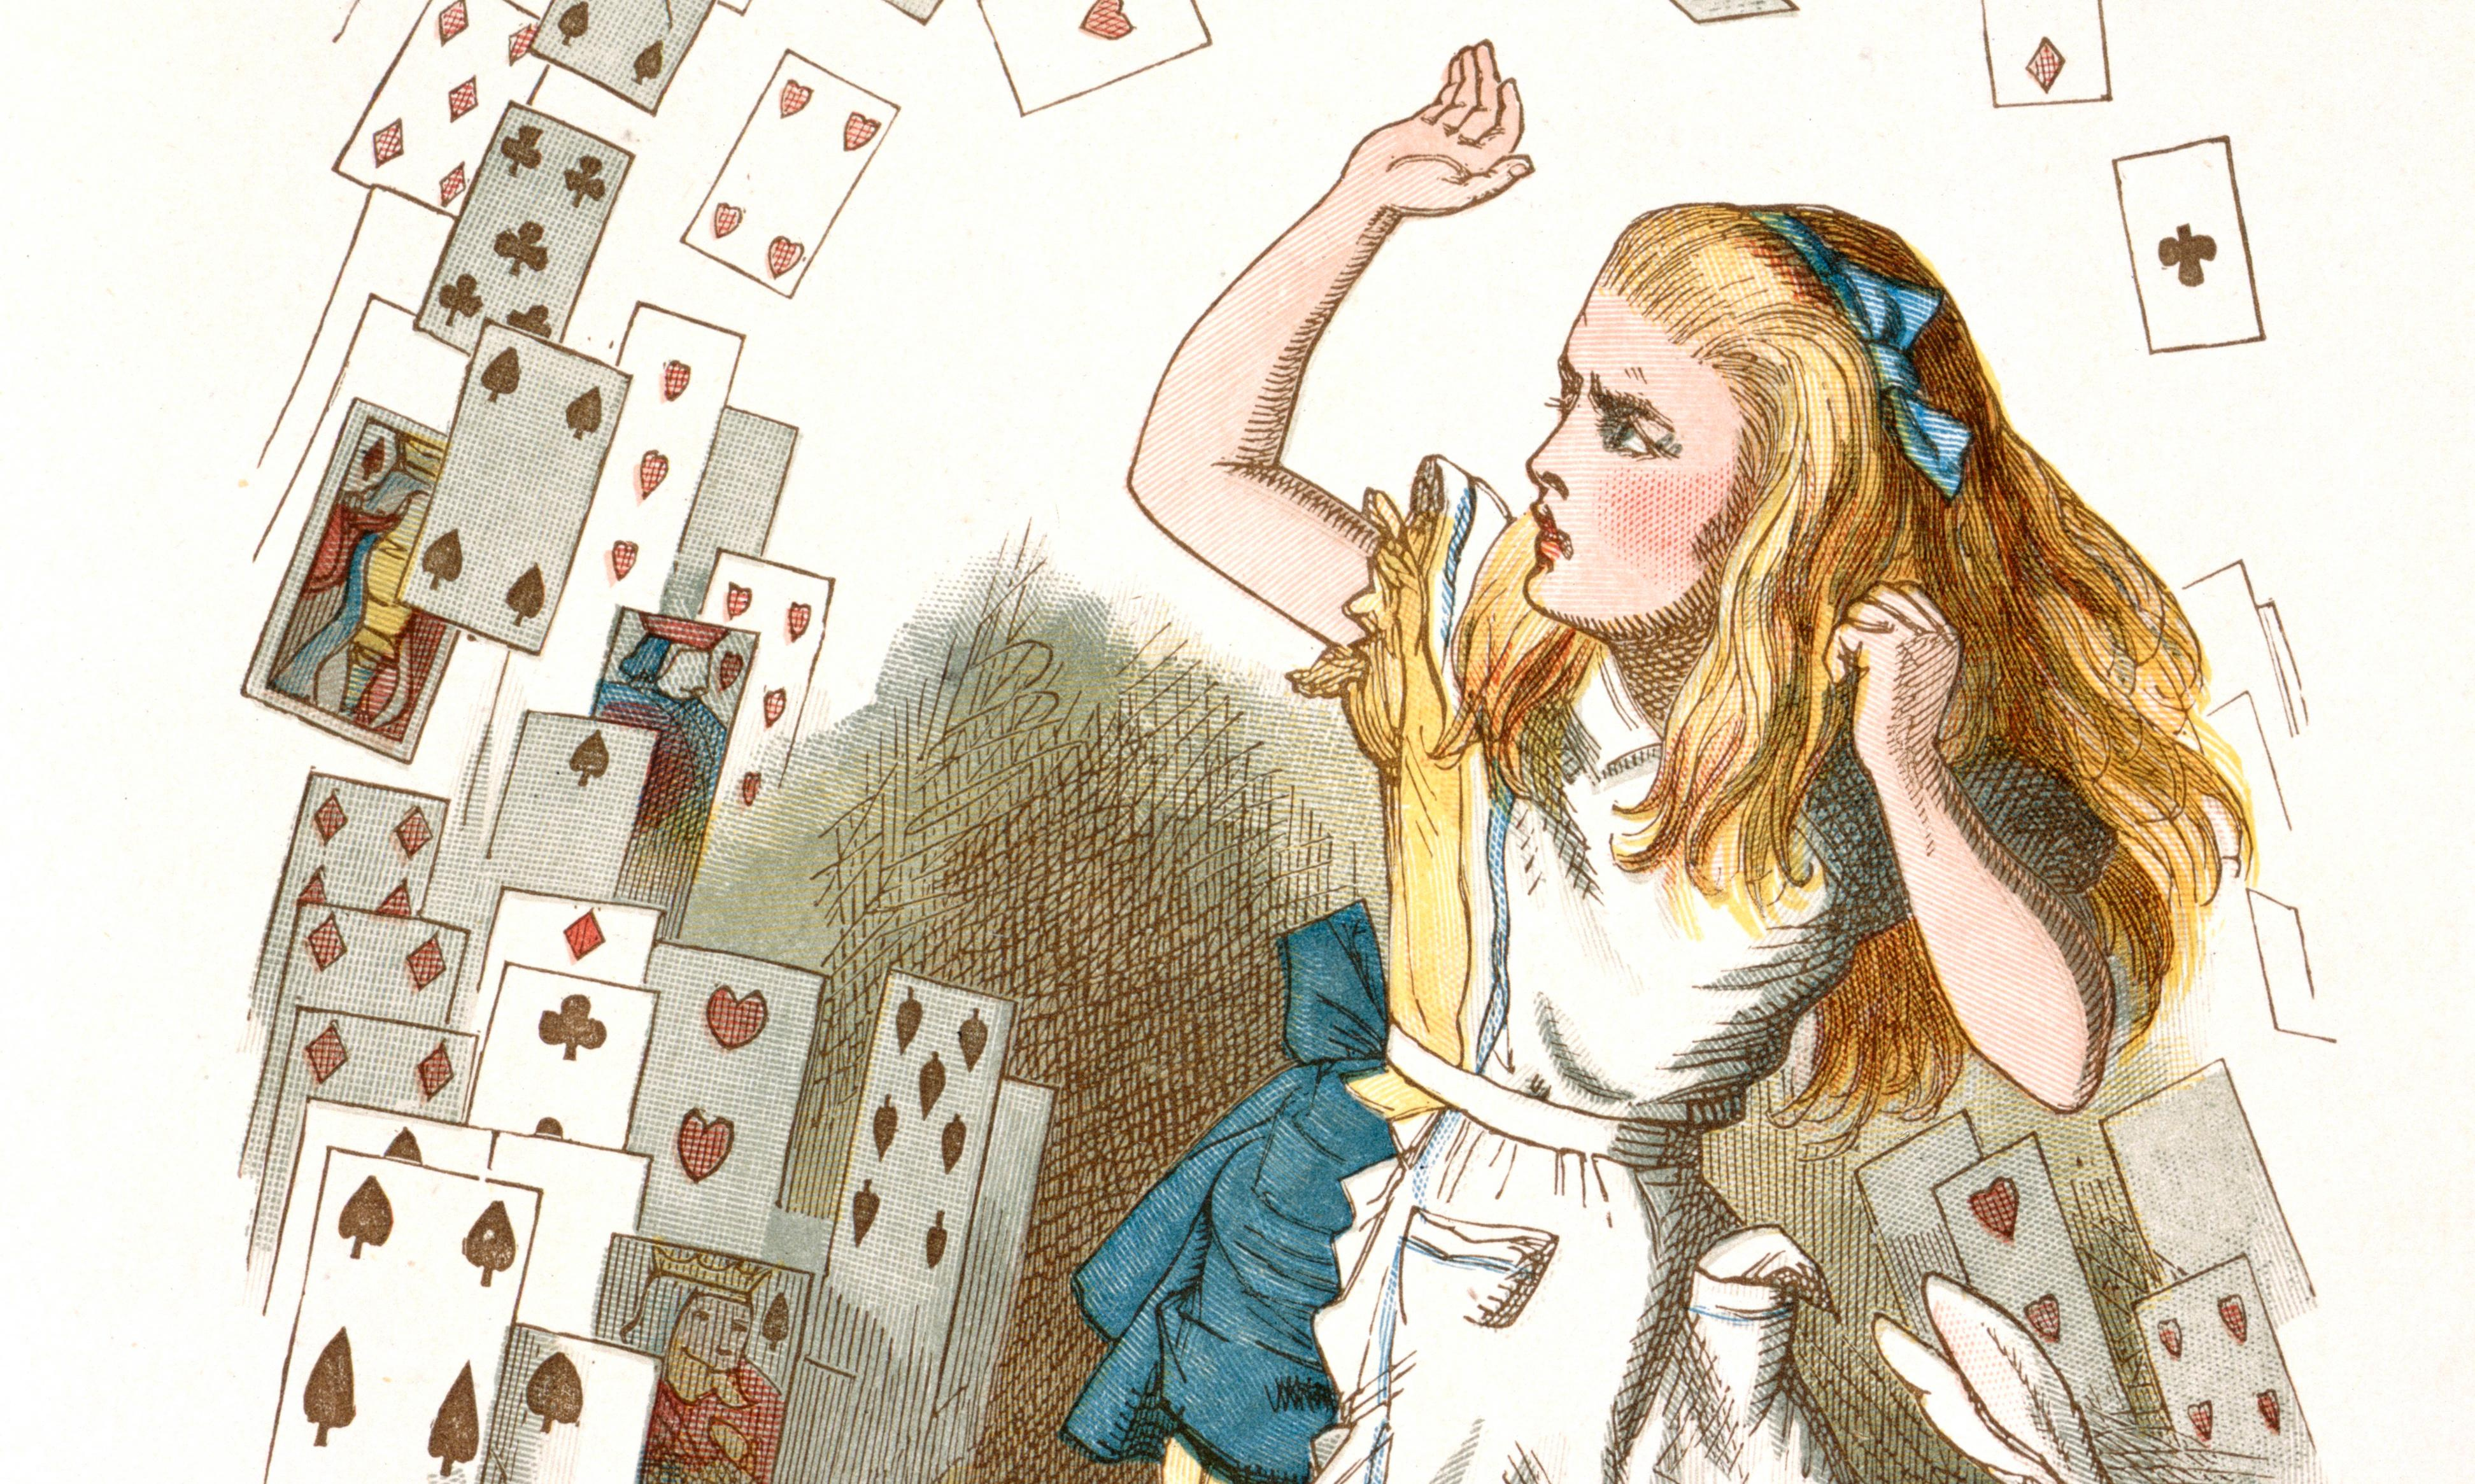 'The best fun in millimetres': great books about miniature worlds